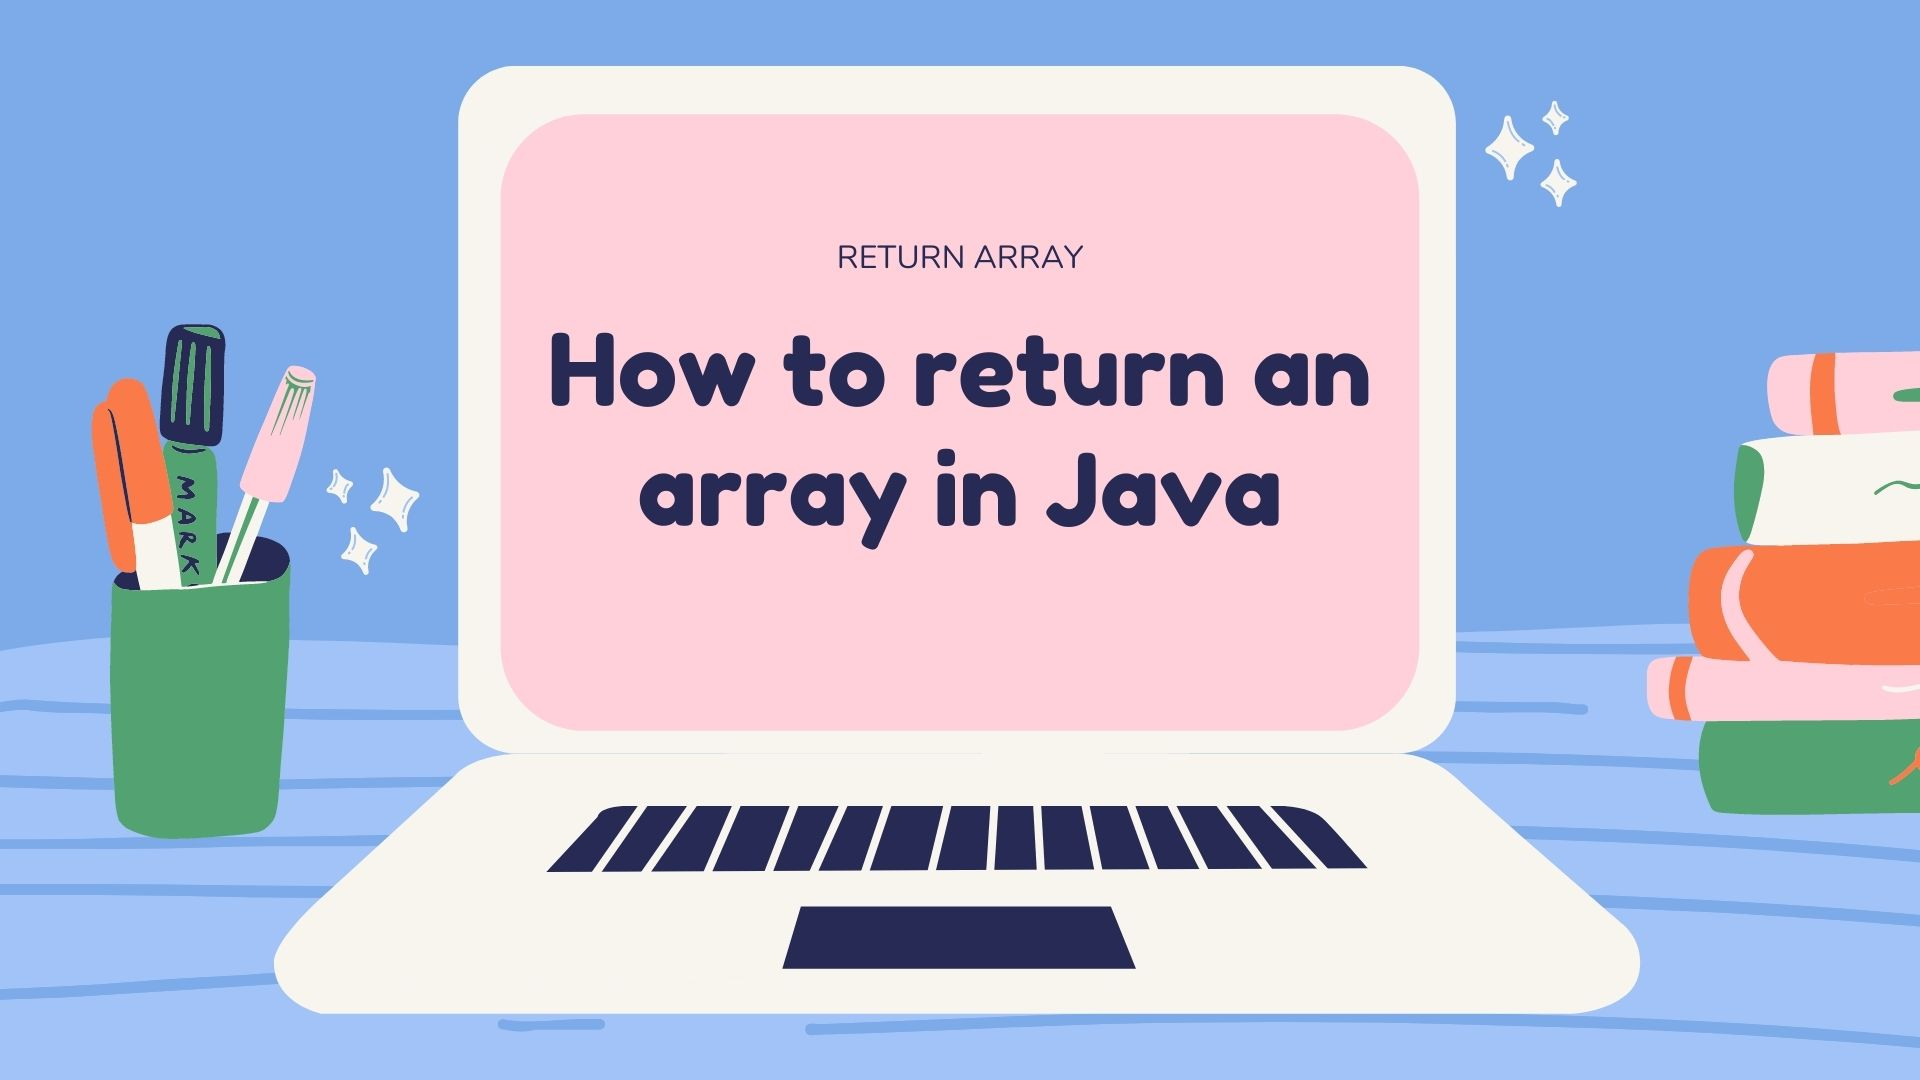 How to return an array in Java